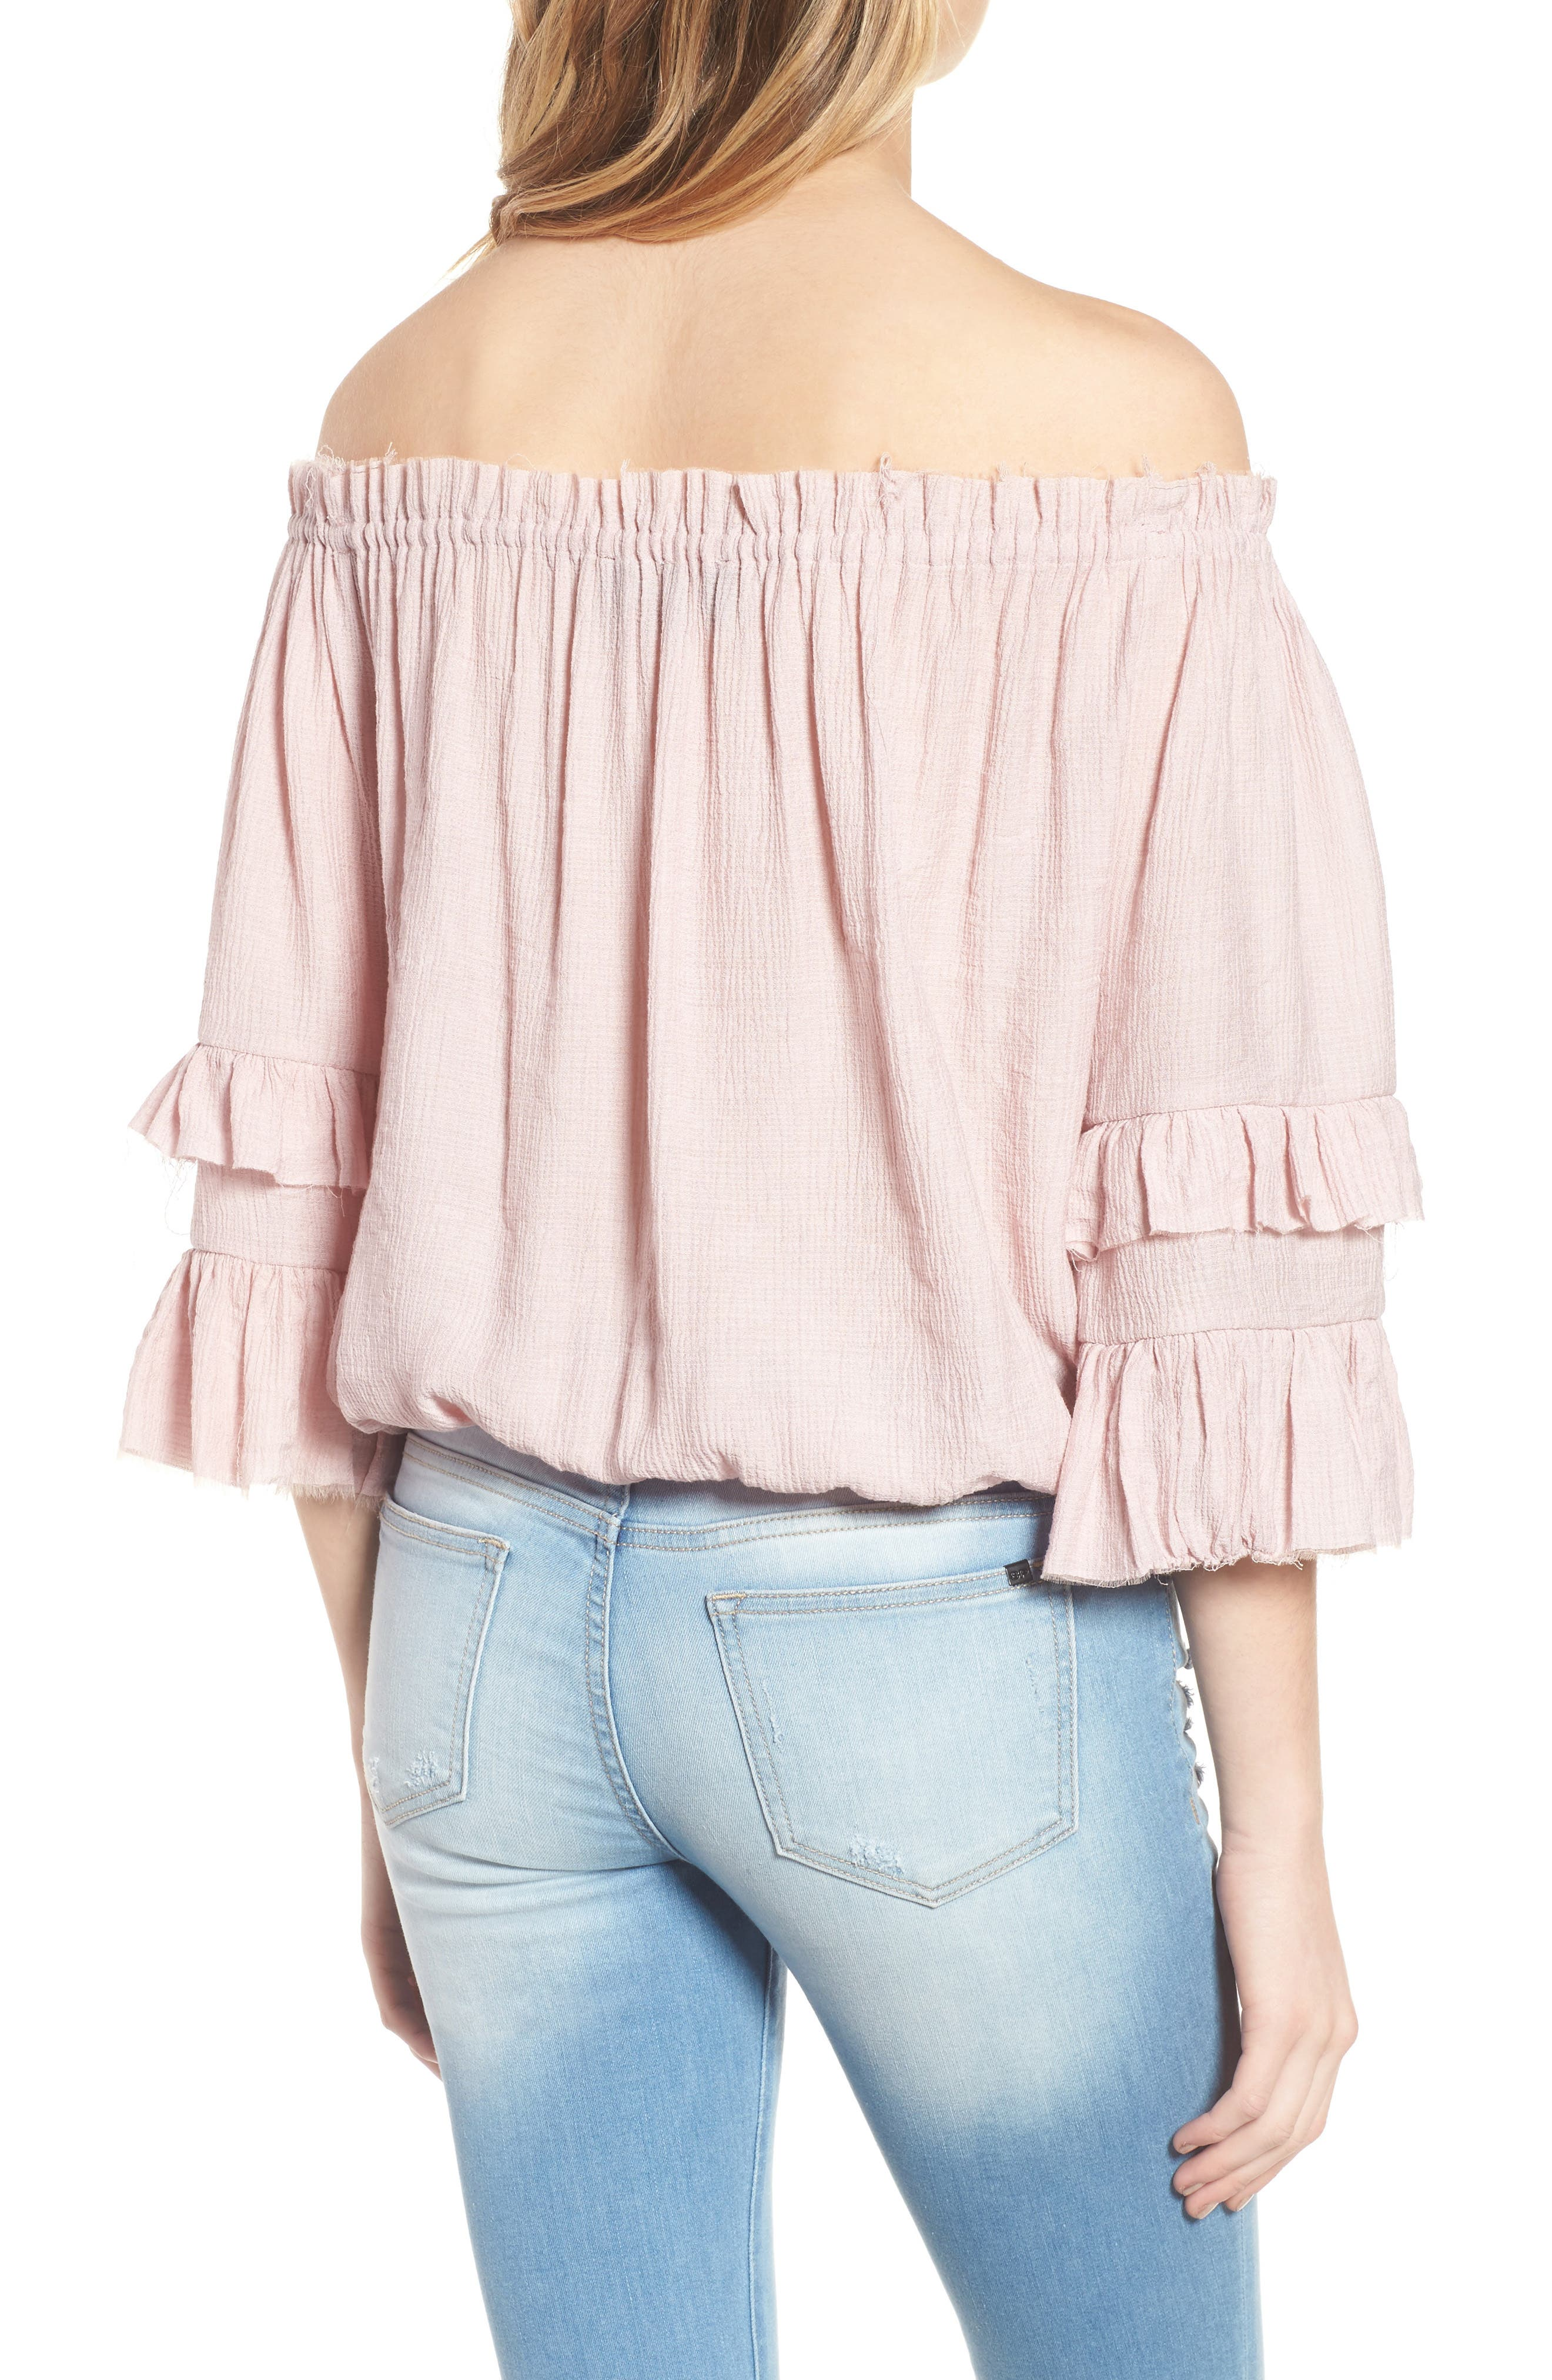 KNOW ONE CARES,                             Tiered Off the Shoulder Top,                             Alternate thumbnail 2, color,                             685